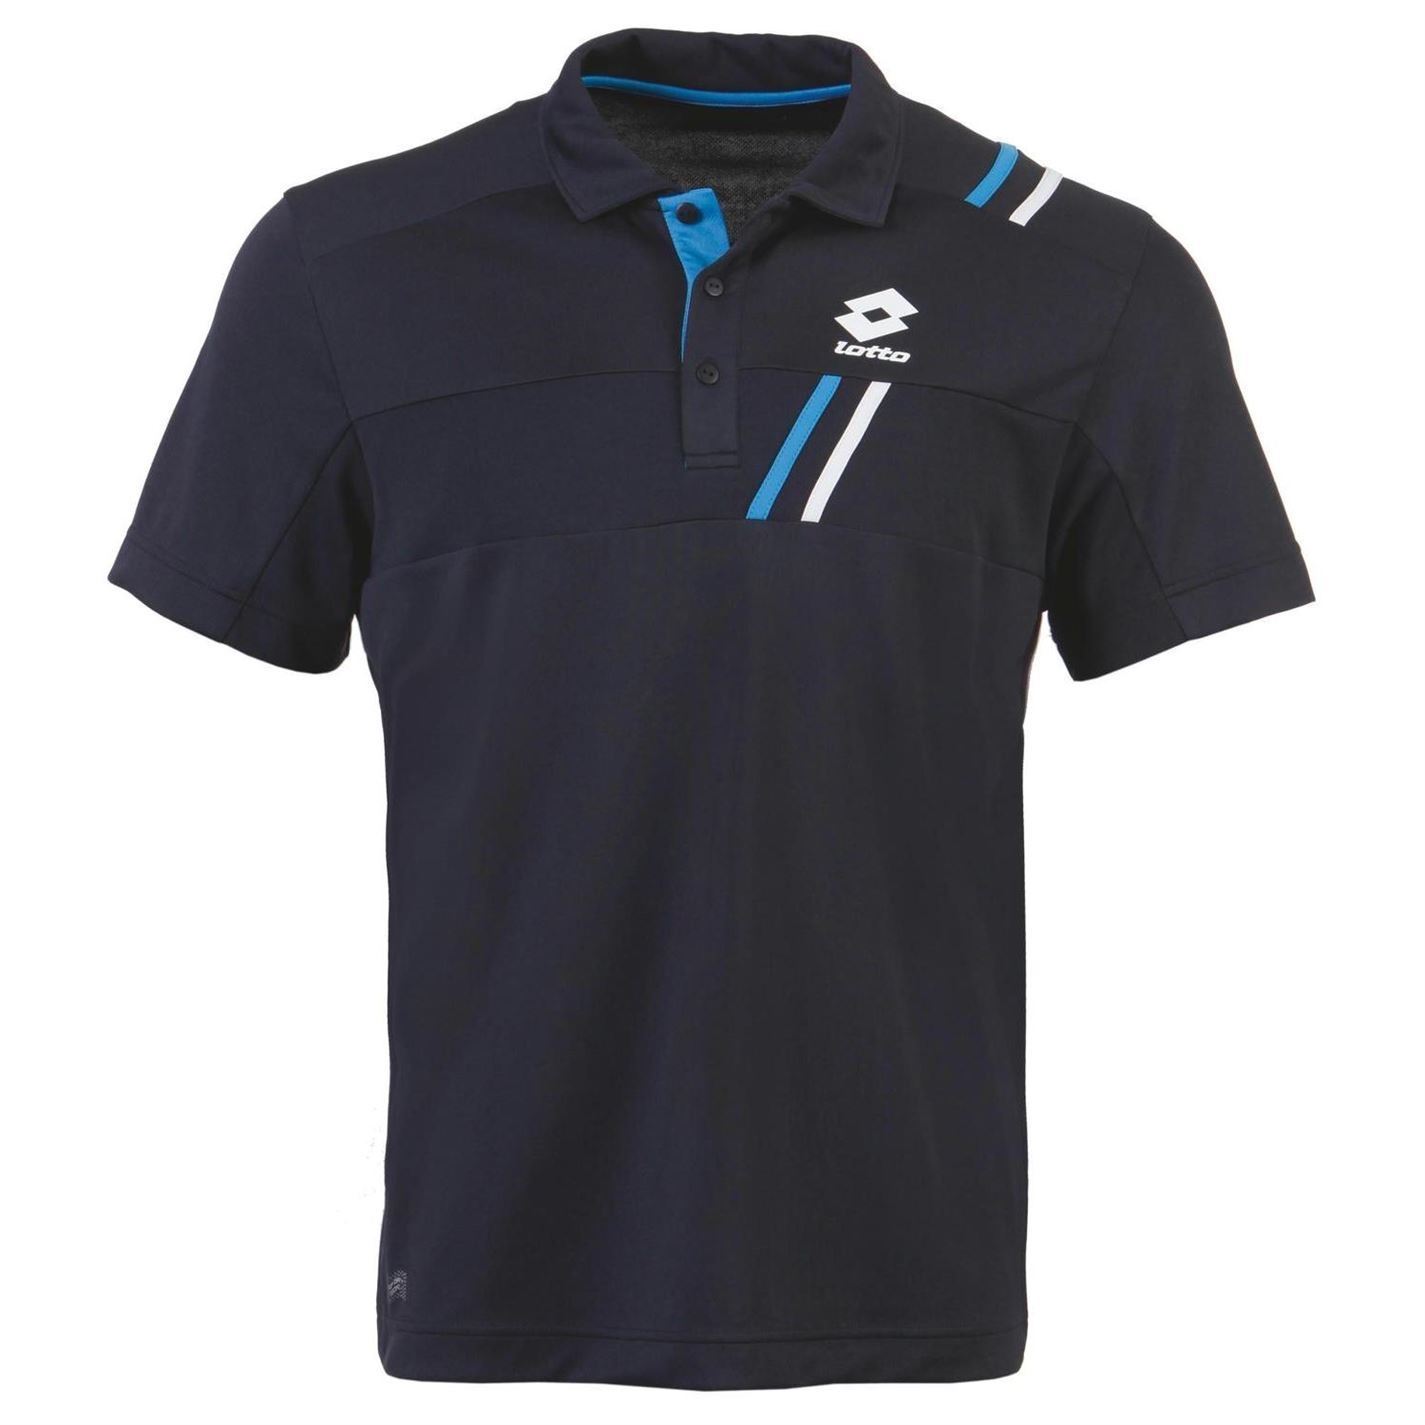 lotto mens tennis polo short sleeve sports training t shirt tee top ebay. Black Bedroom Furniture Sets. Home Design Ideas